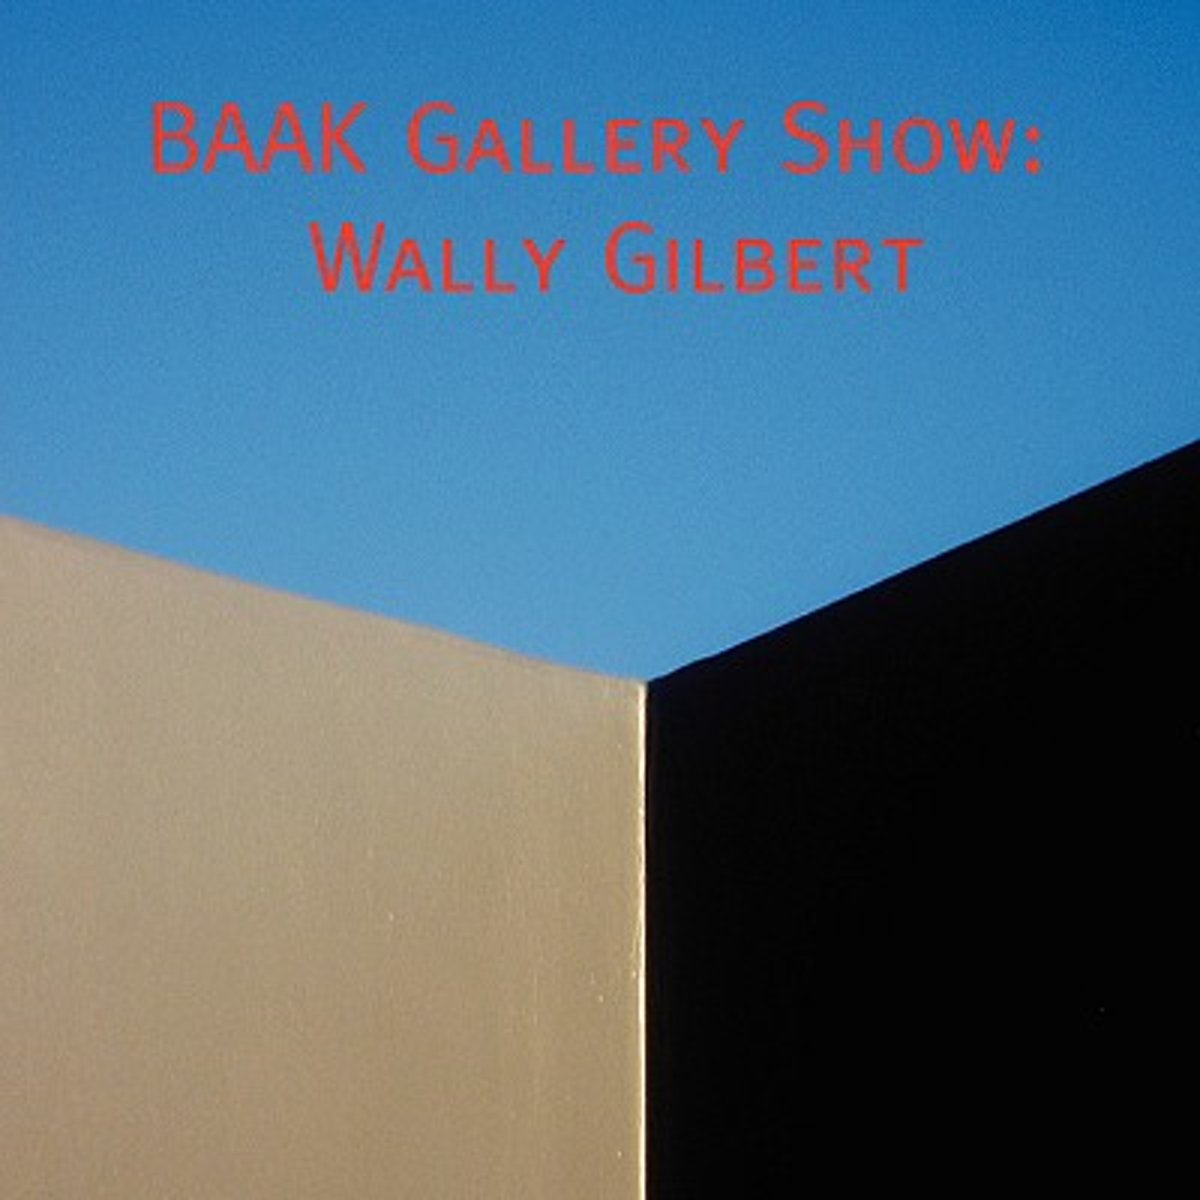 Catalog of the BAAK Gallery Show of Wally Gilbert